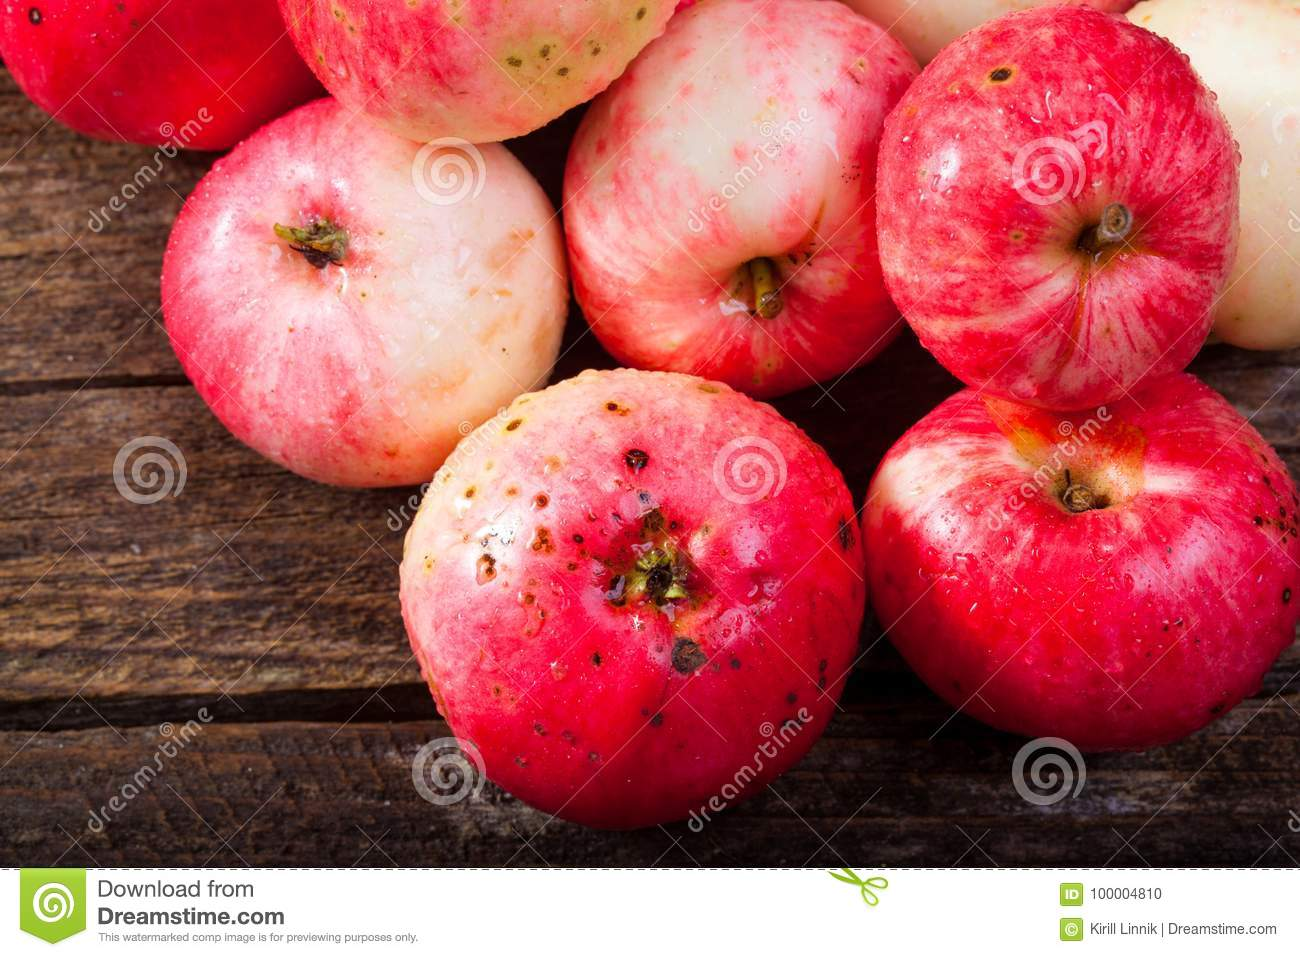 Download Red ripe apples stock photo. Image of meal, juicy, food - 100004810